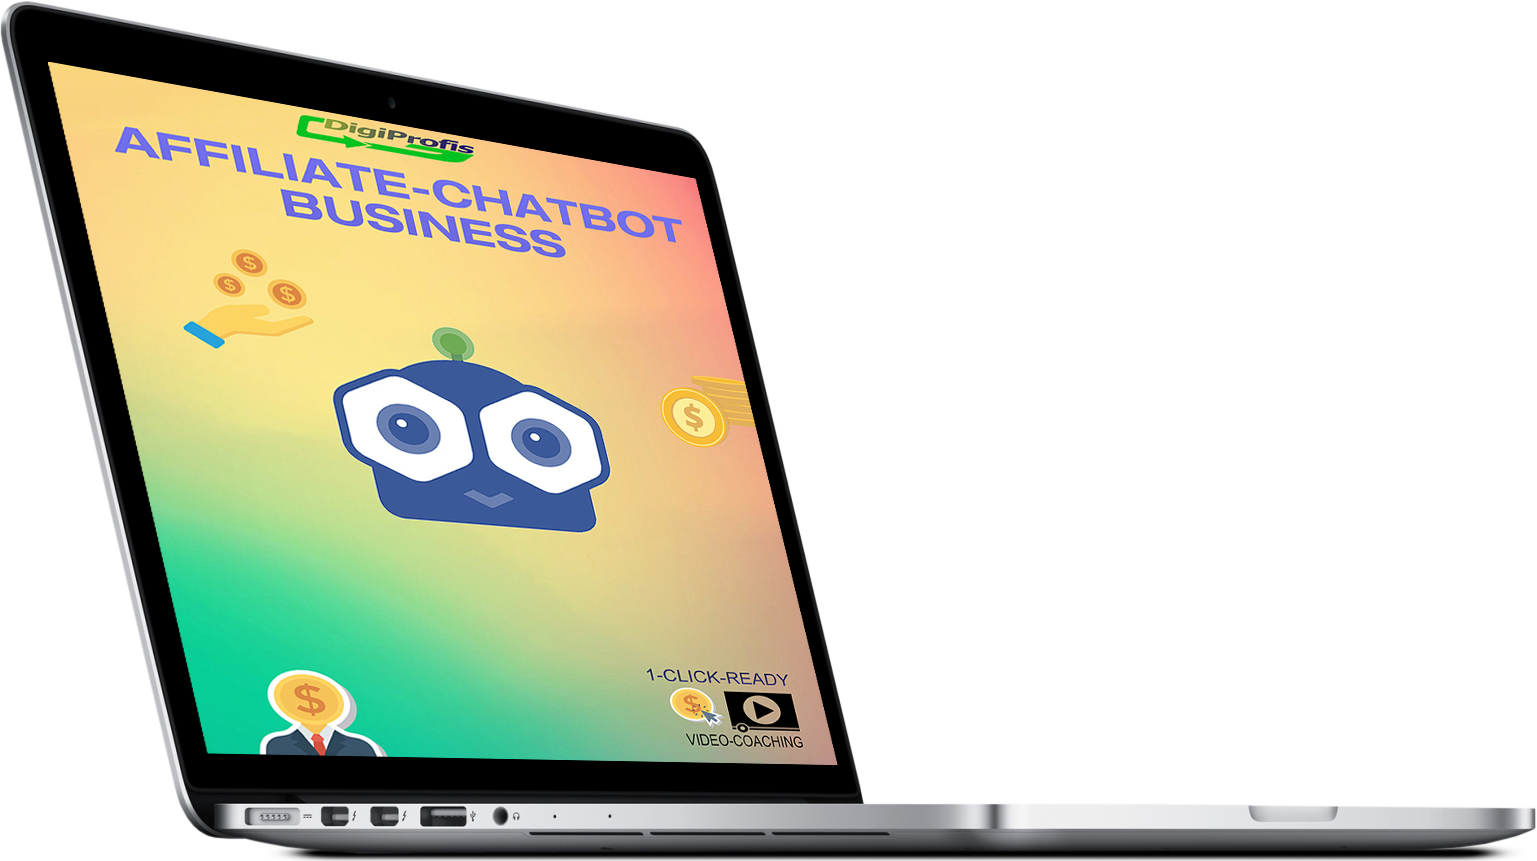 Affiliate Chatbot Business Partner werden